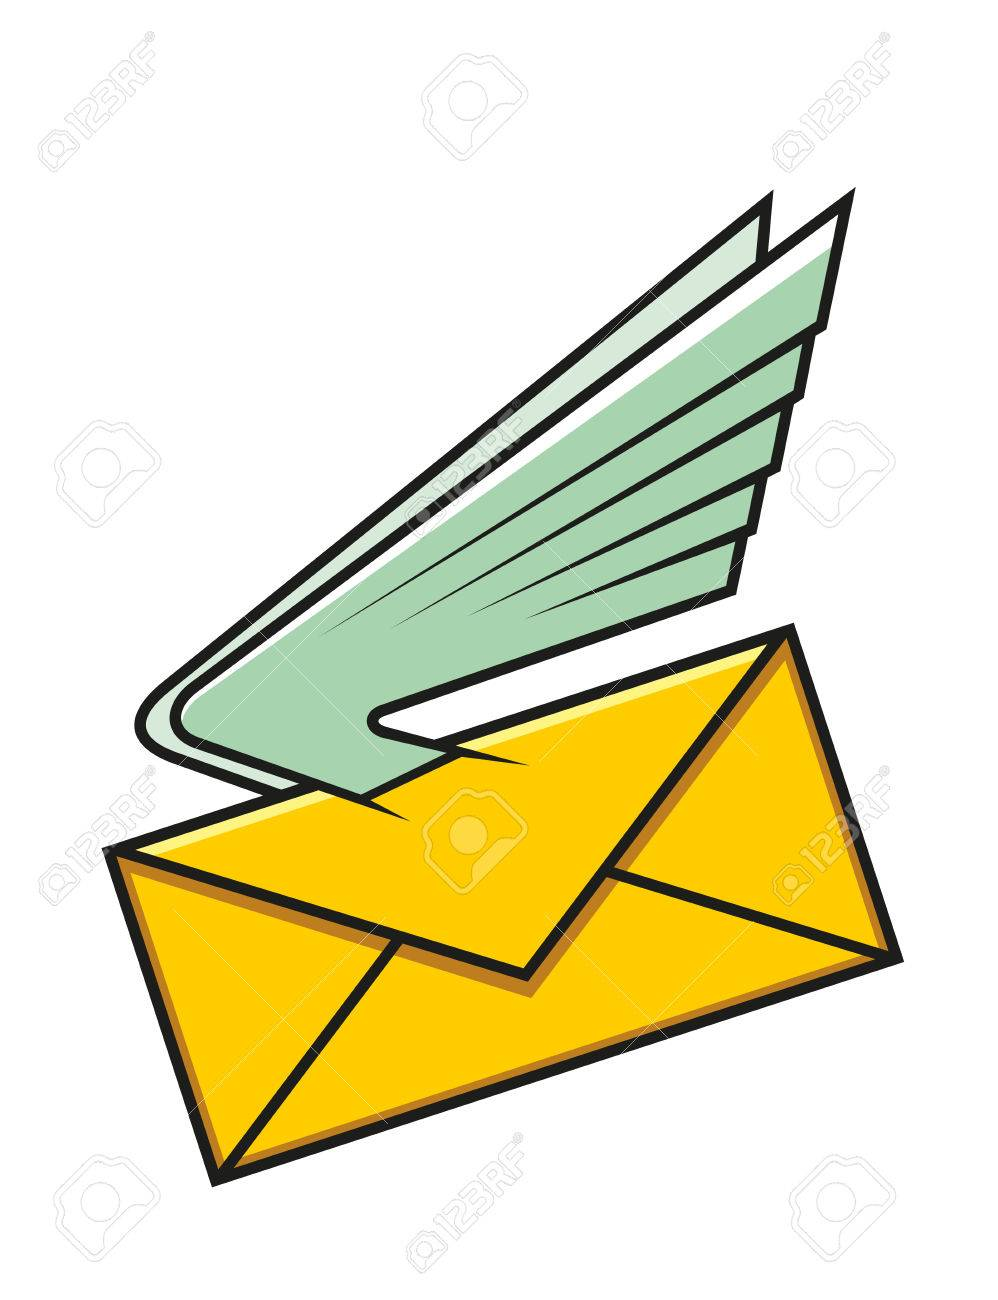 998x1300 Yellow Envelope With Wings, Symbol Of Communication, Electronic